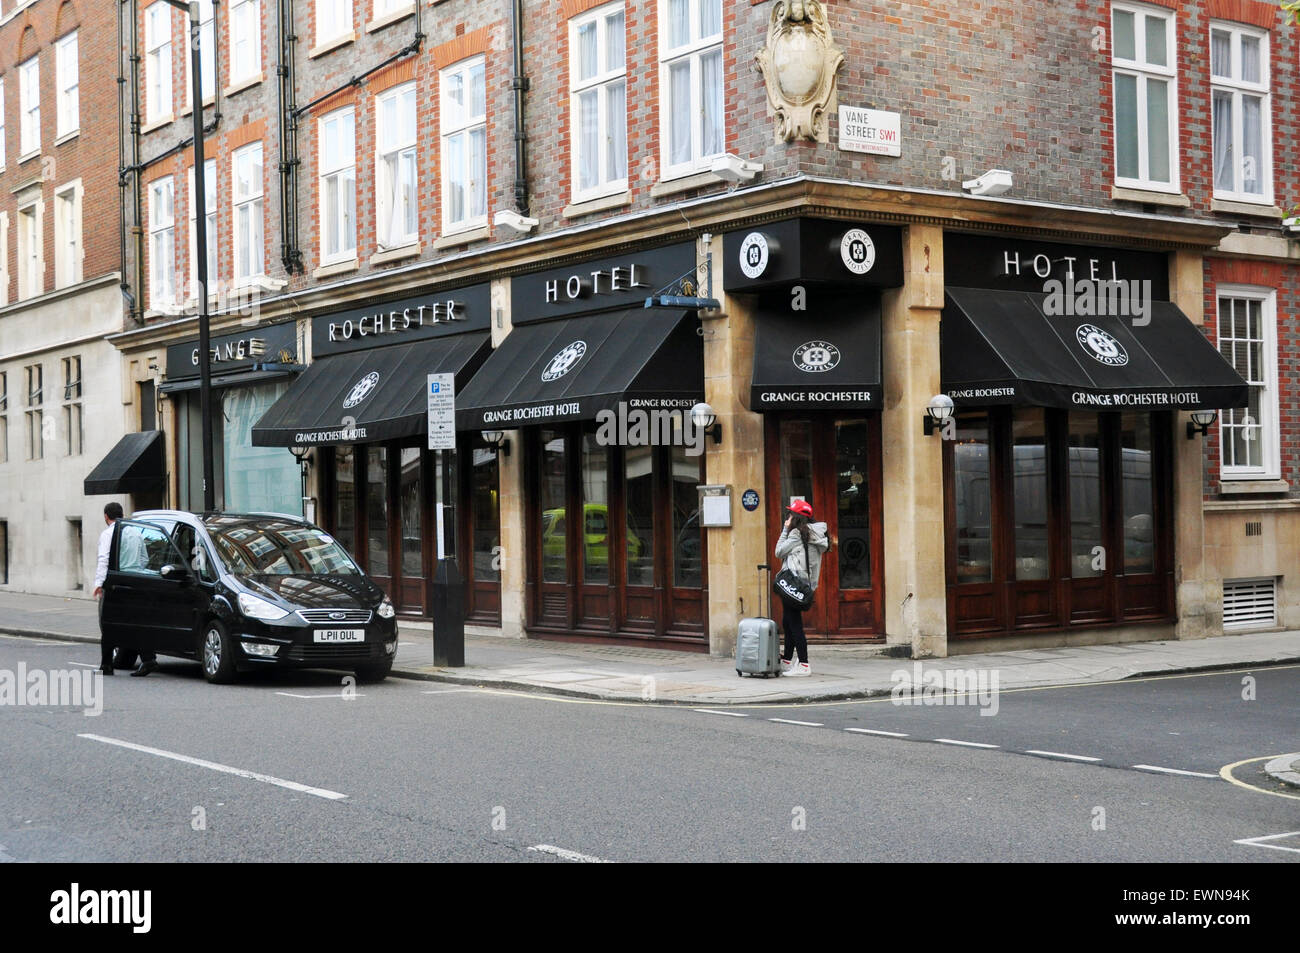 Rochester Hotel  Rochester Rd Westminster London - Stock Image